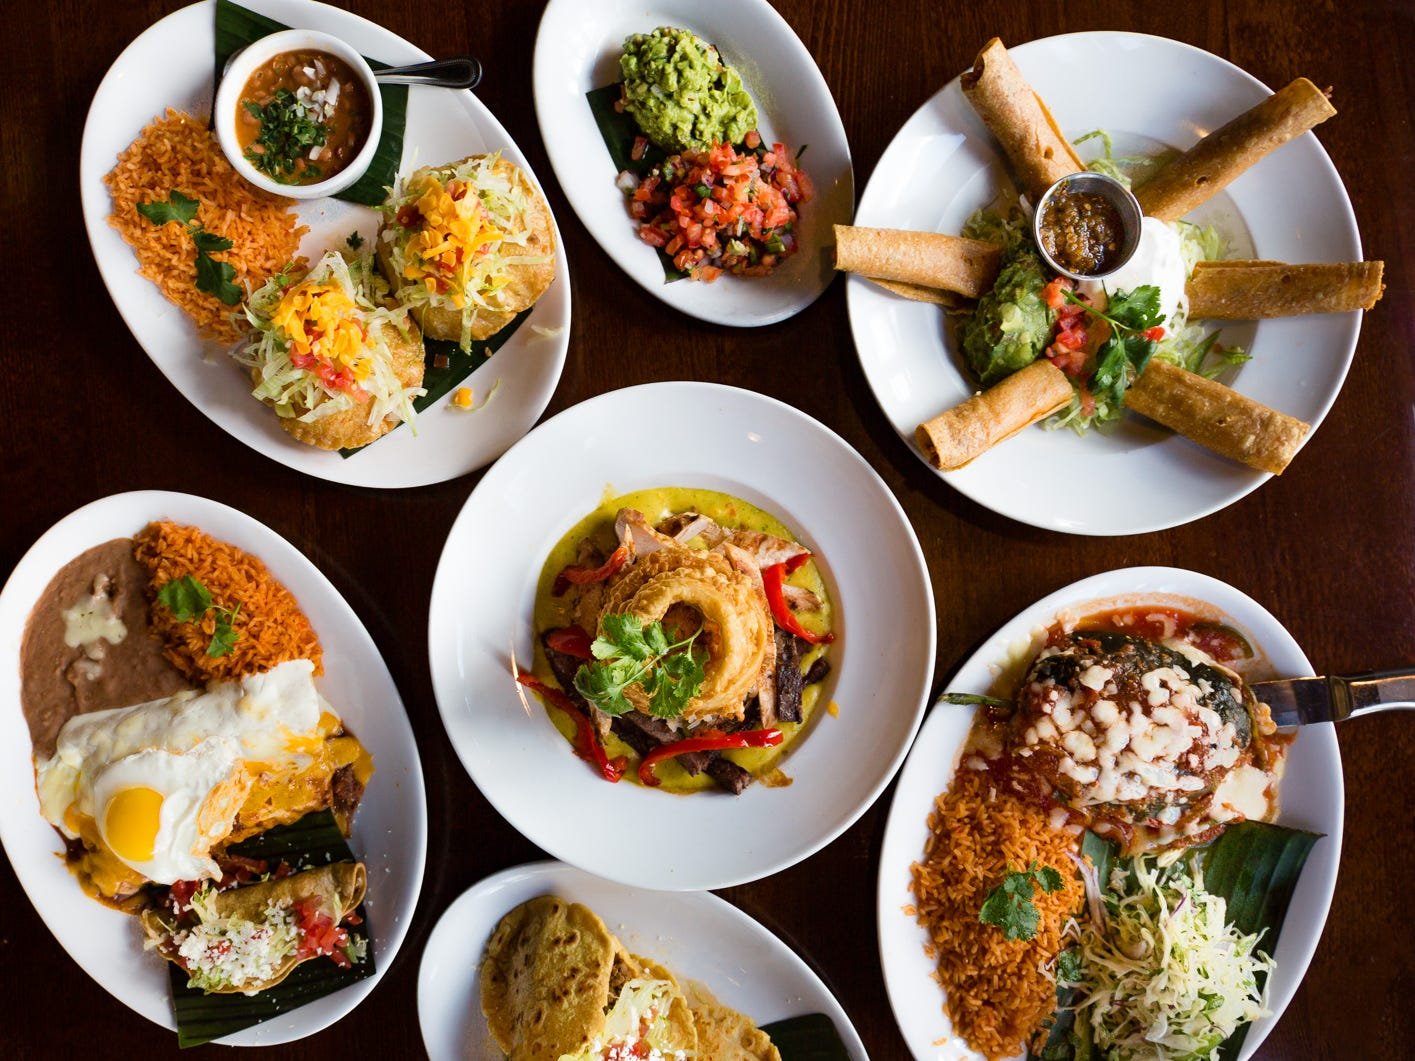 """""""We serve Tex-Mex, but we don't copy everyone else in town,"""" says La Comida co-owner Mario Urtecho. """"You're gonna taste the fresh flavors like a dance in Mexico. Our Tex-Mex menu hasn't changed since we opened four years ago because our customers won't let us."""" You'll find Tex-Mex staples like hand-rolled cheese enchiladas topped with chile con carne, chile rellenos, nachos and fajitas on the menu here, but you can also go off-menu and order hard-shell puffy tacos and gorditas made with fresh corn masa."""